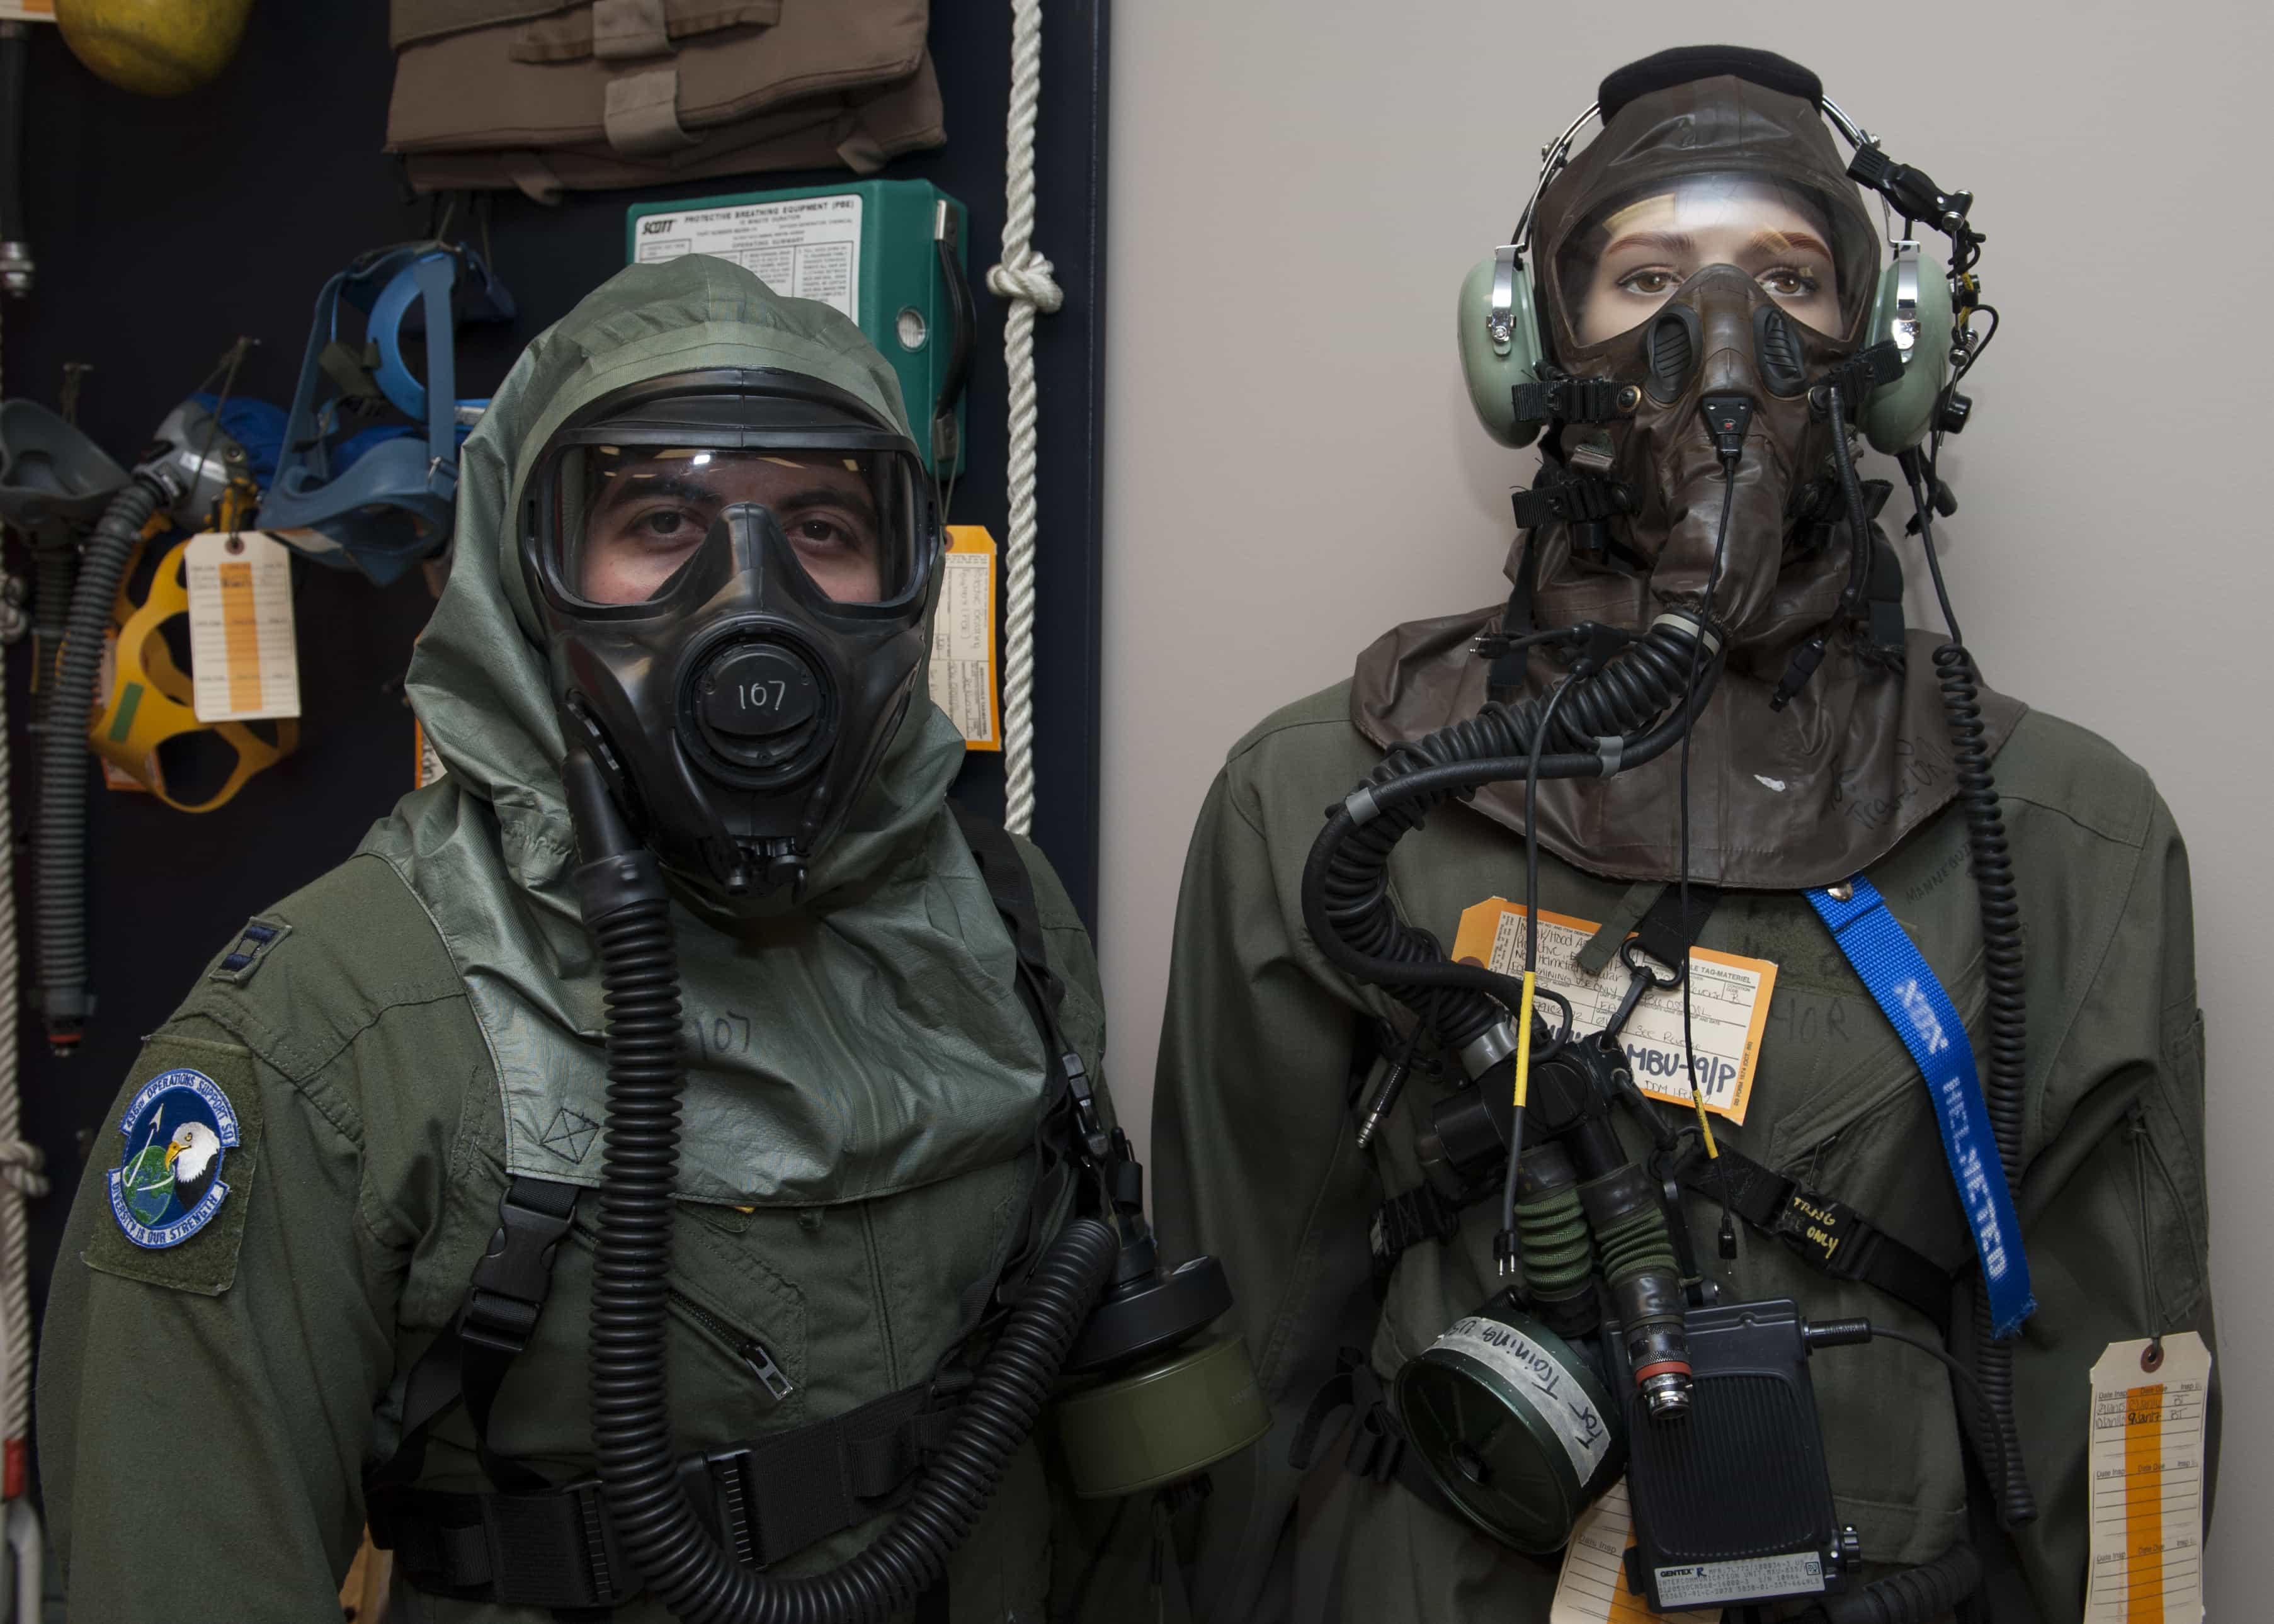 Capt. Edward Silva, 436th Operations Support Squadron Aircrew Flight Equipment commander, poses while wearing the XM69 Aircrew Chemical, Biological, Radiological and Nuclear Defense (CBRN) system while standing next to a mannequin wearing the legacy U.S. Air Force Aircrew Eye Respiratory Protection (AERP) system March 2, 2016, inside the Aircrew Flight Equipment facility on Dover Air Force Base, Del. These masks are worn by aircrew members in the event they are exposed to a chemical, biological, radiological or nuclear environment. (U.S. Air Force photo/Senior Airman Zachary Cacicia)